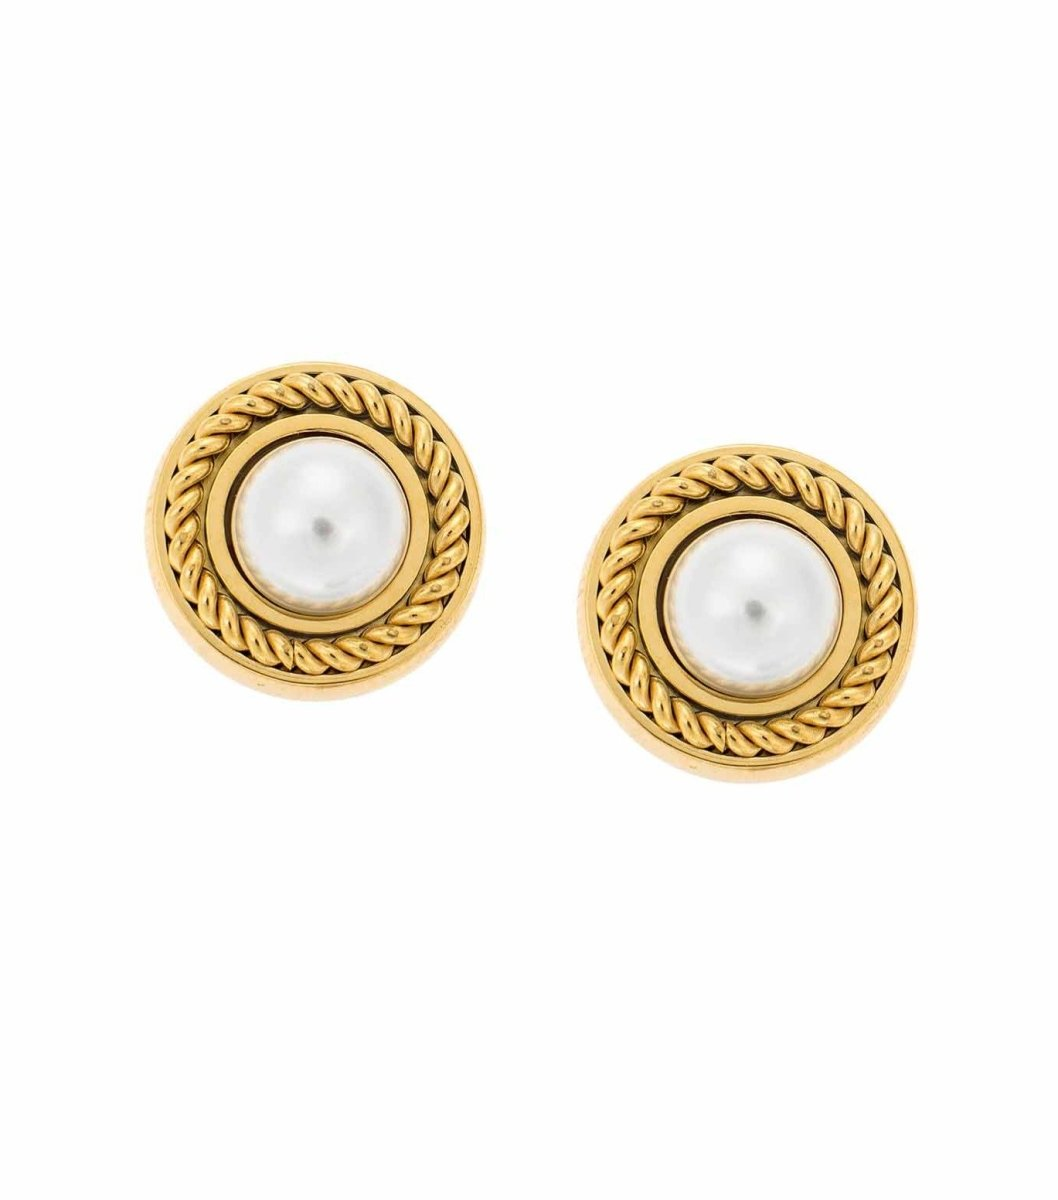 Puppis PUW42905G Gold Plated Steel Earrings with Pearls - Goldy Jewelry Store